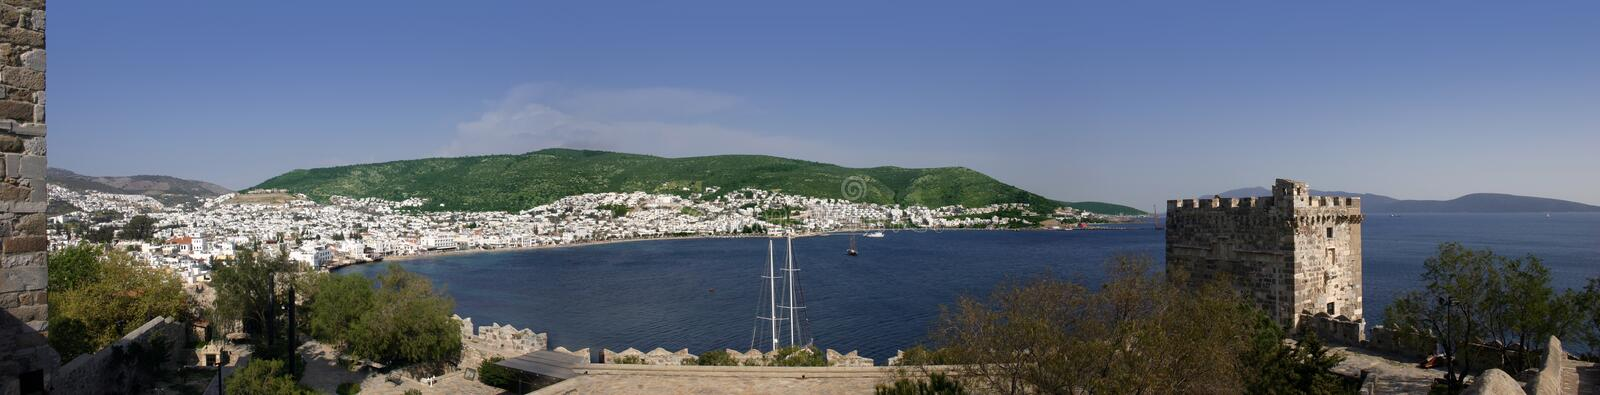 Bodrum Castle. Panorama of the bay in Bodrum, Turkey from the castle royalty free stock image